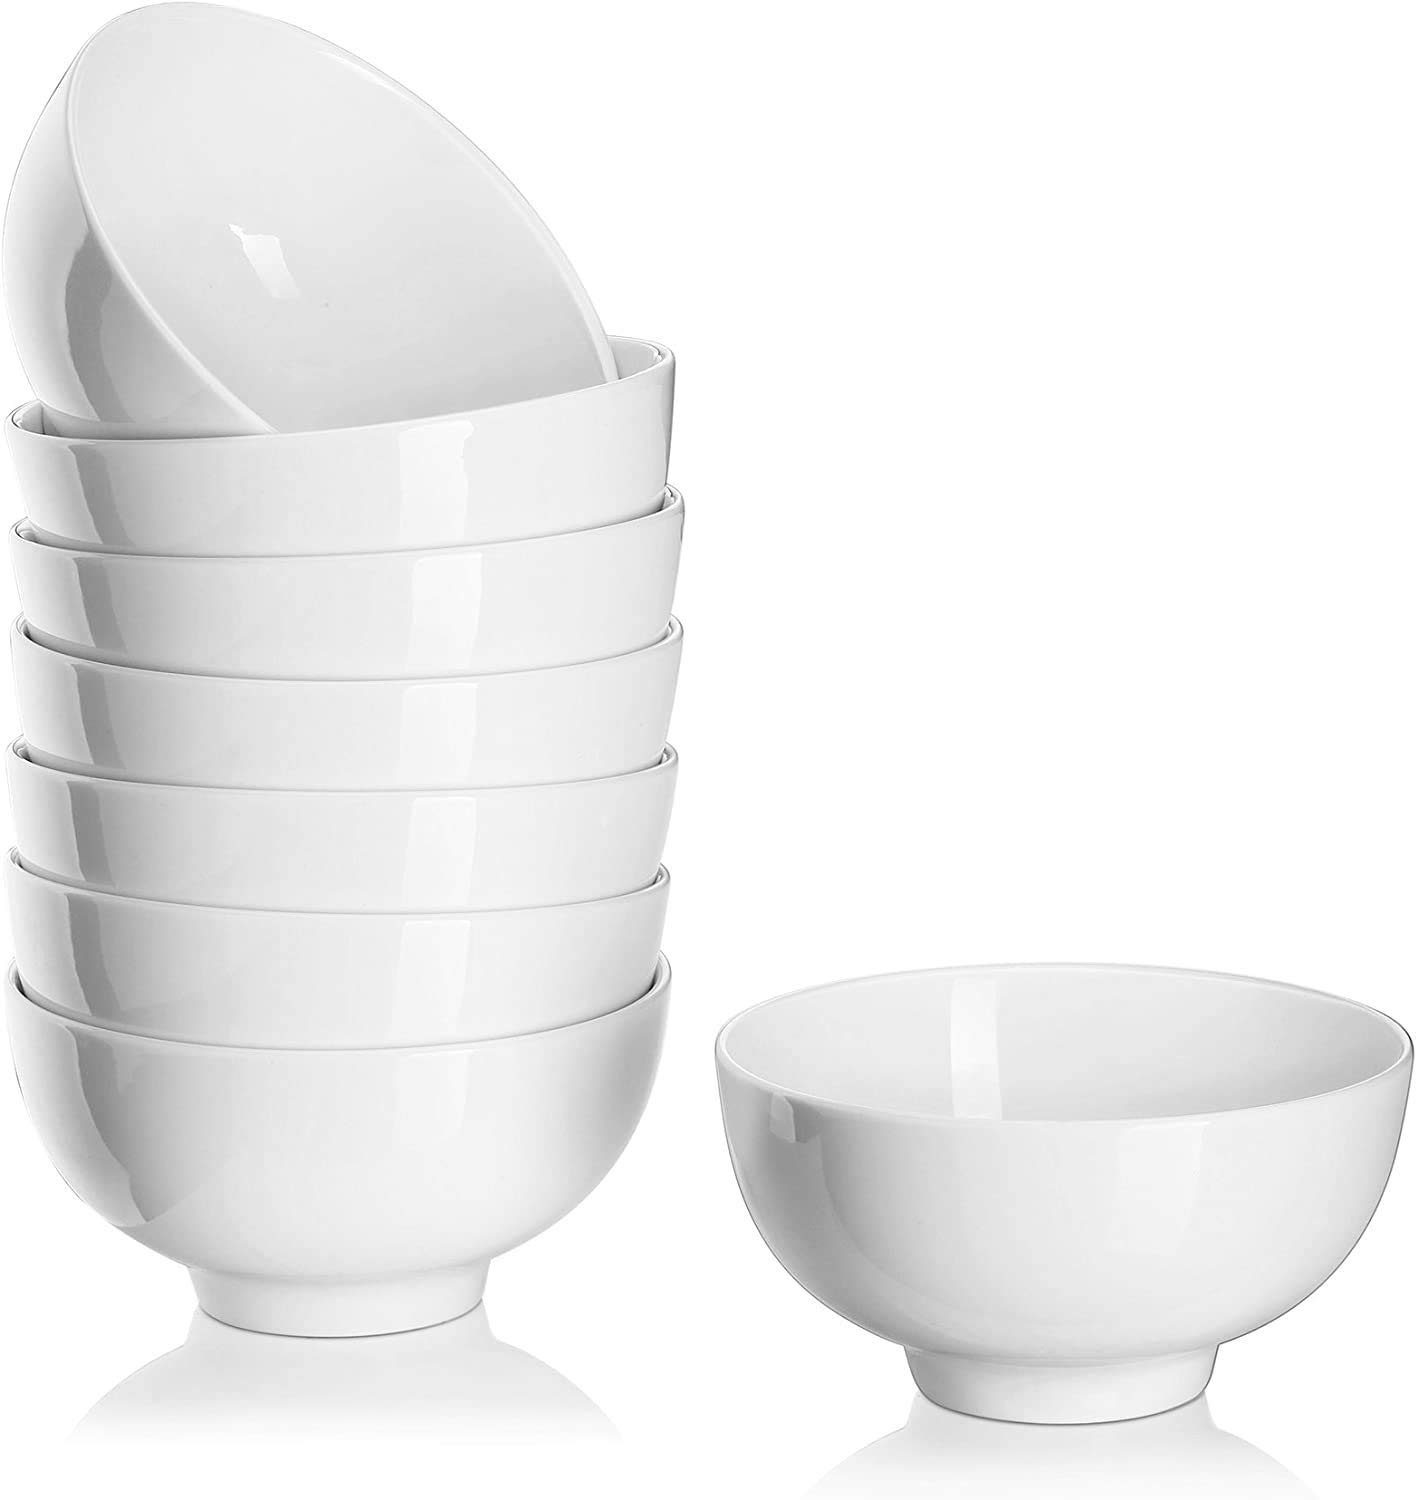 DOWAN 10 Ounce Small Bowl Set, 8 Packs Porcelain Bowls, Portion Control for Ice Cream, Dessert, Rice, Side Dishes, Food Prep or Serving, Dipping Sauce, Snack, Appetizer, 4.5 Inches, White